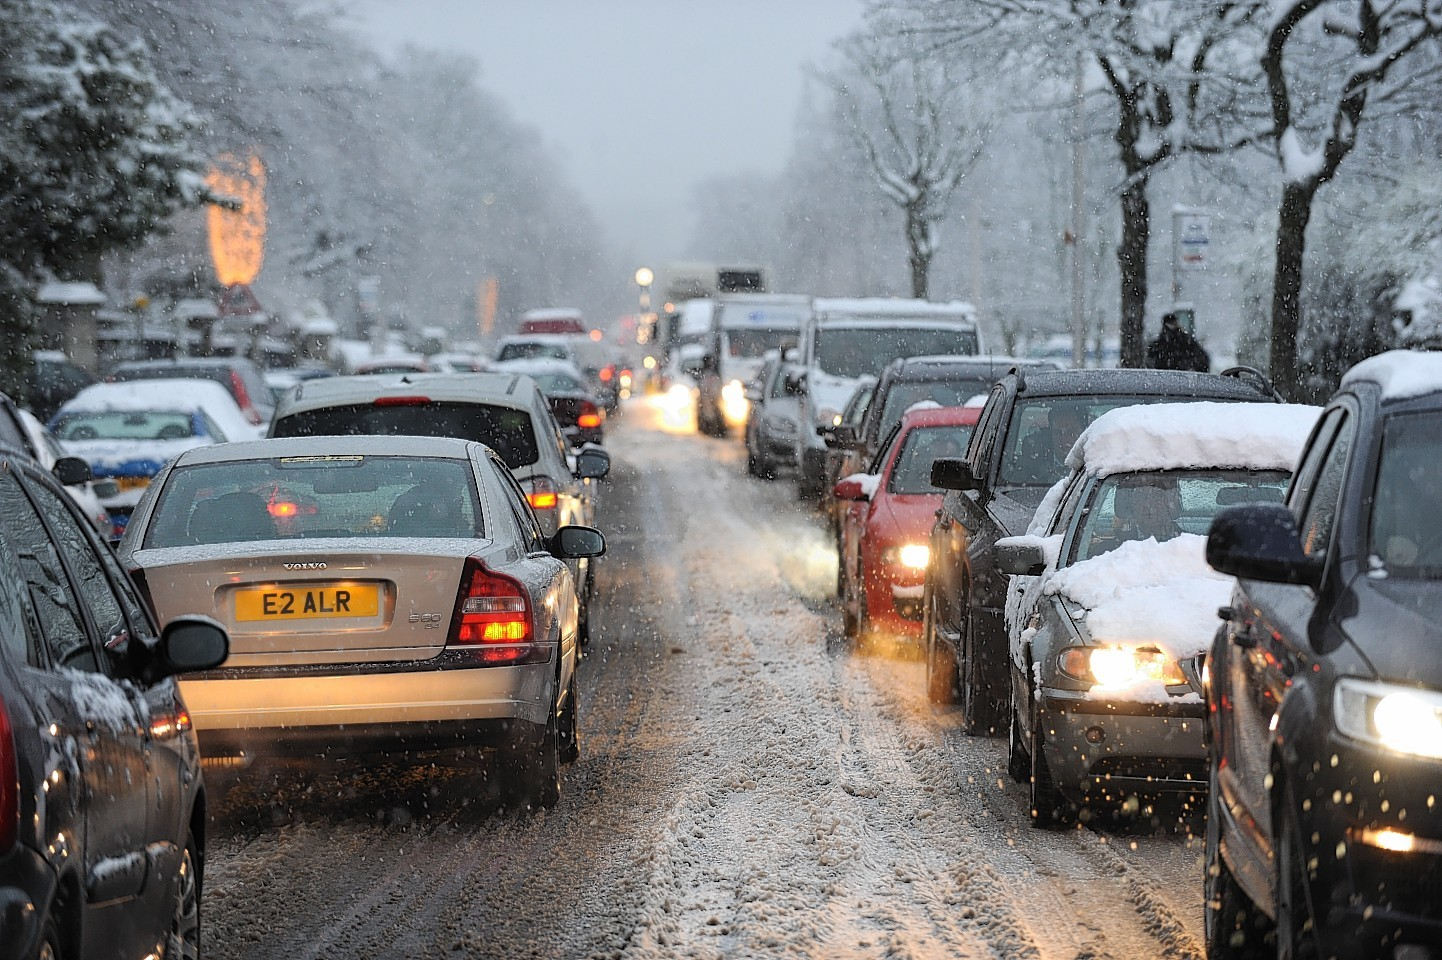 Police are warning drivers of the dangers of the winter weather